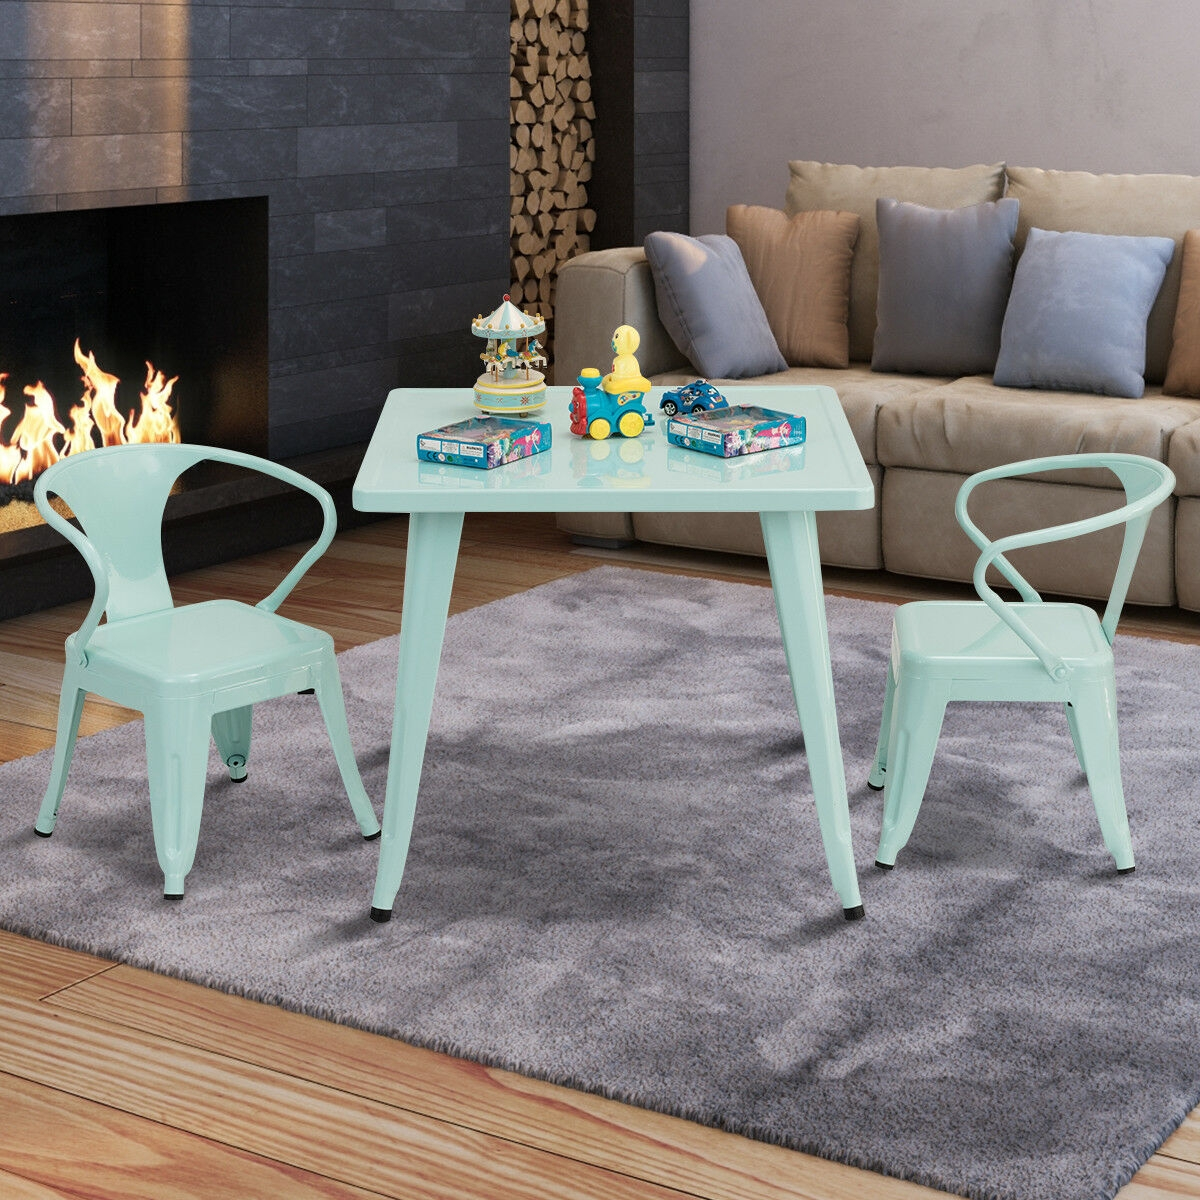 27'' Kids Square Steel Table Play Learn Activity Table